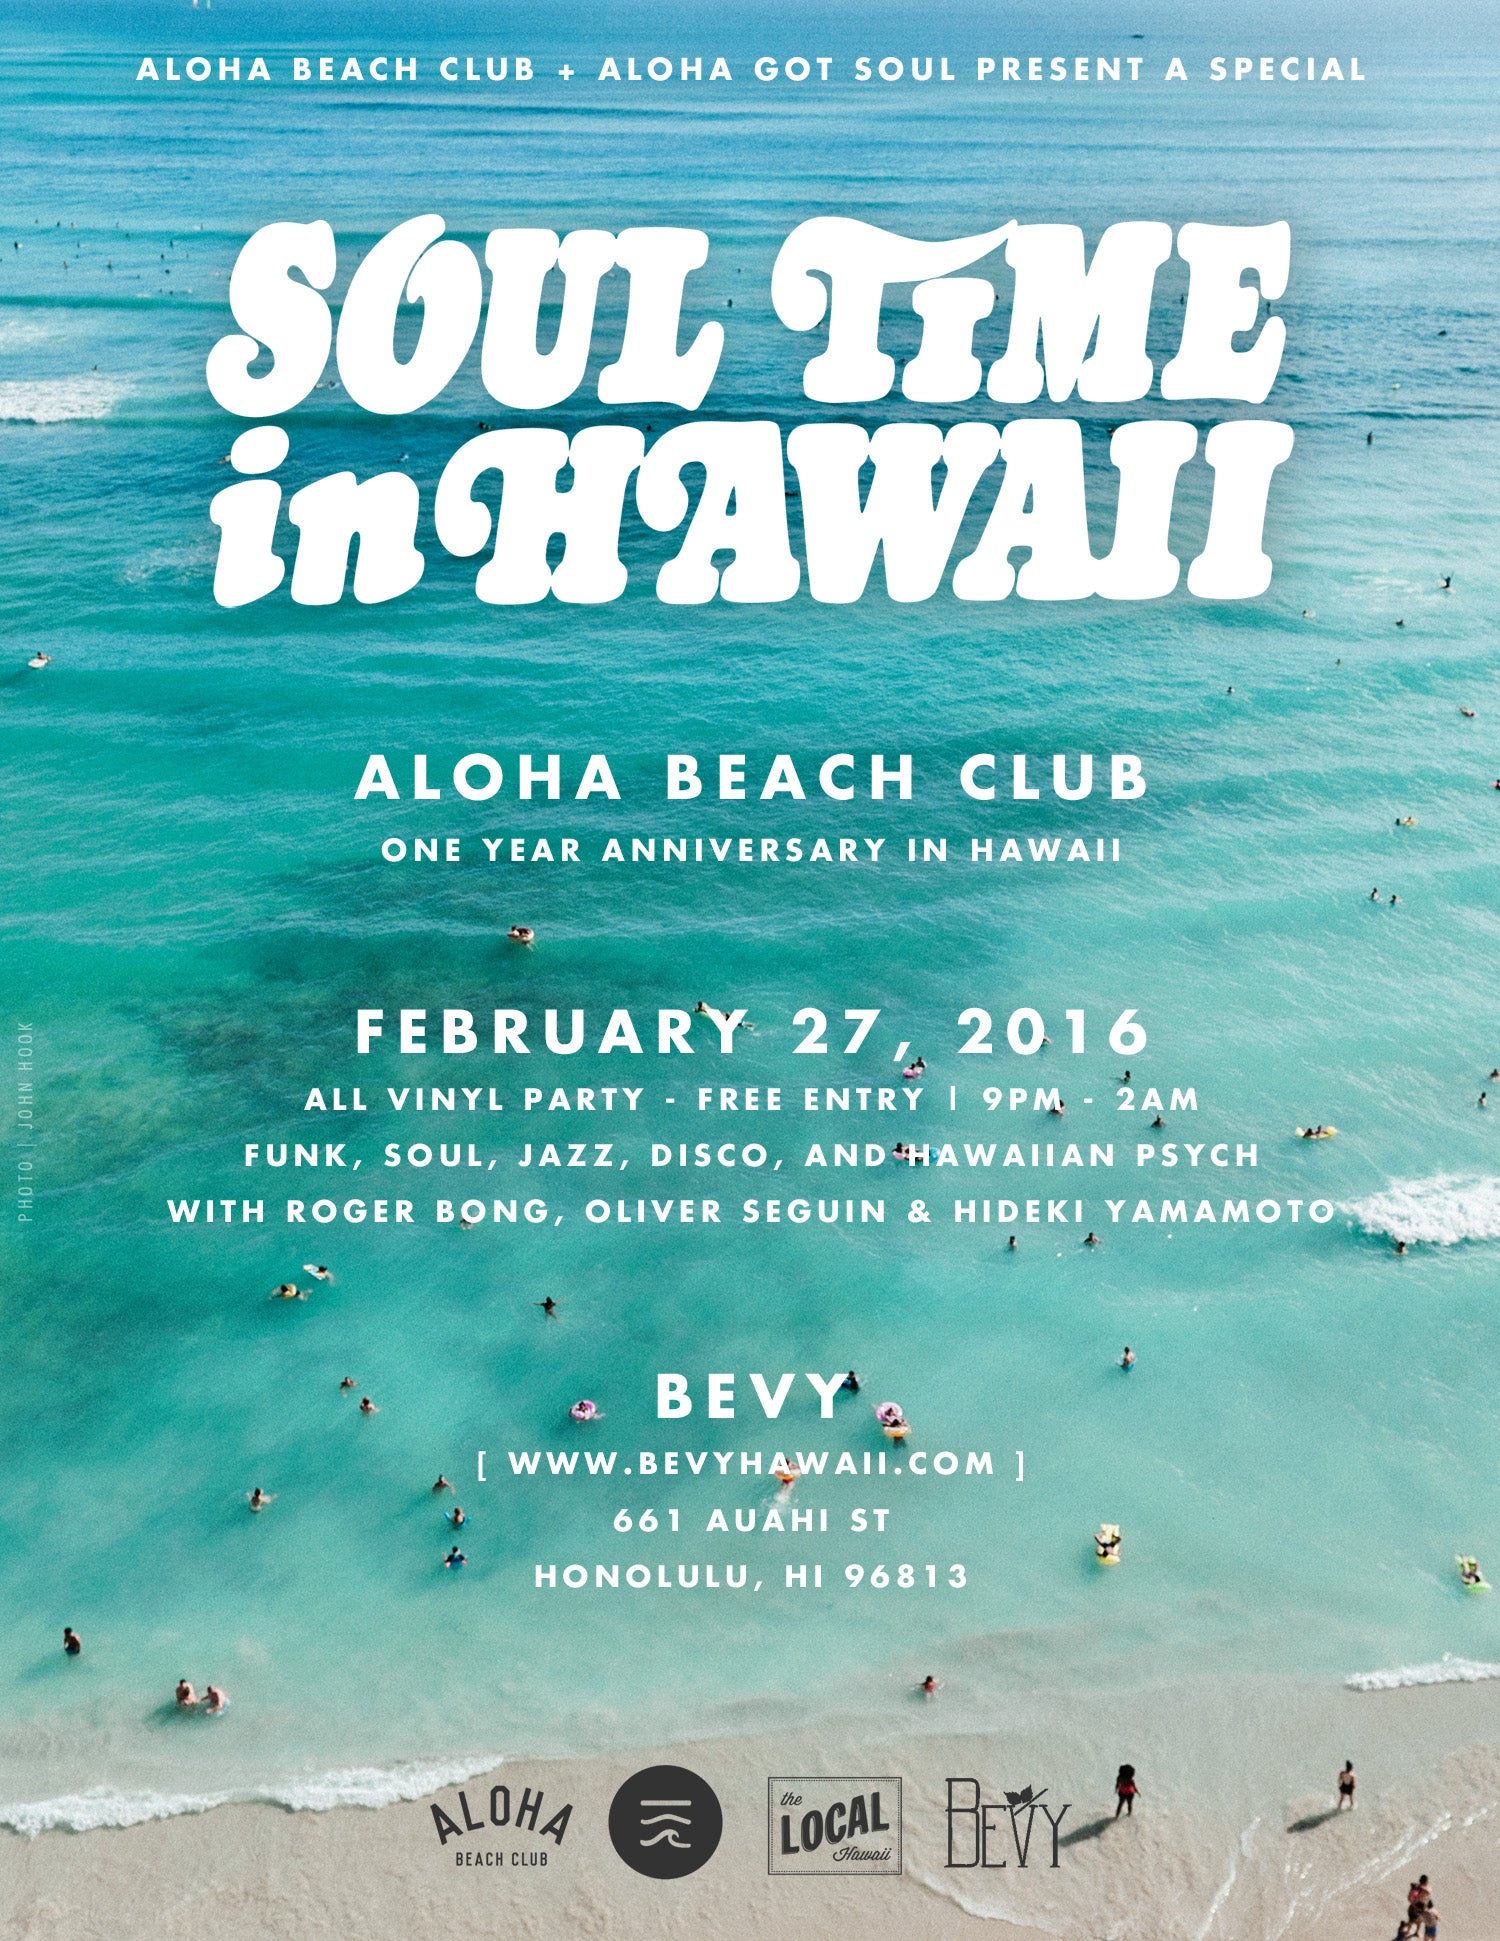 Aloha Beach Club and Aloha Got Soul Present a special Soul Time in Hawaii at Bevy